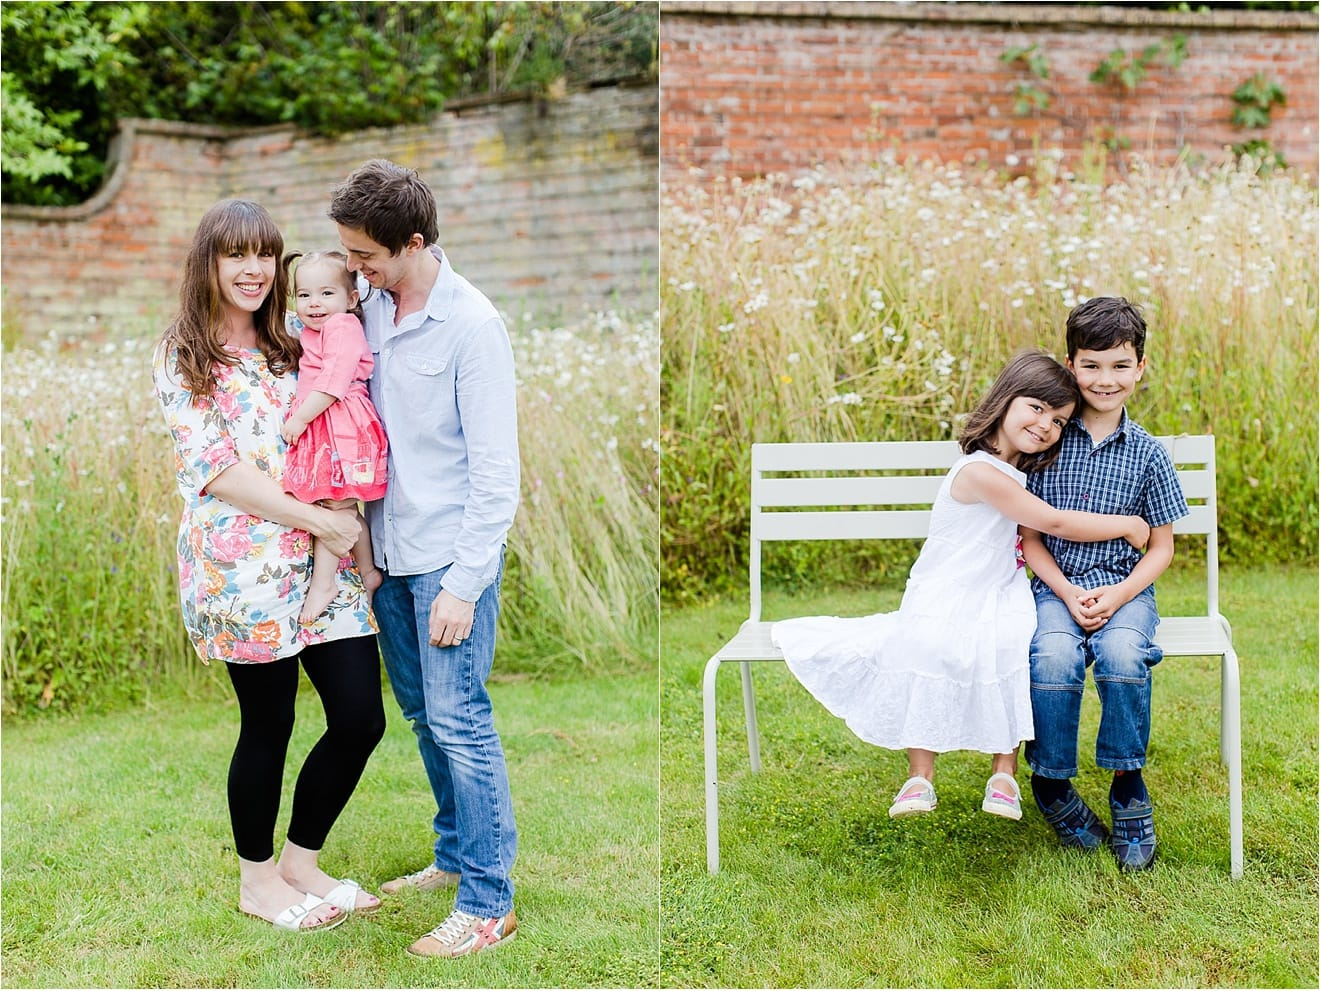 family-photography-surrey-eddie-judd-photographer-mini-sessions-cobham-medicine-garden_0016